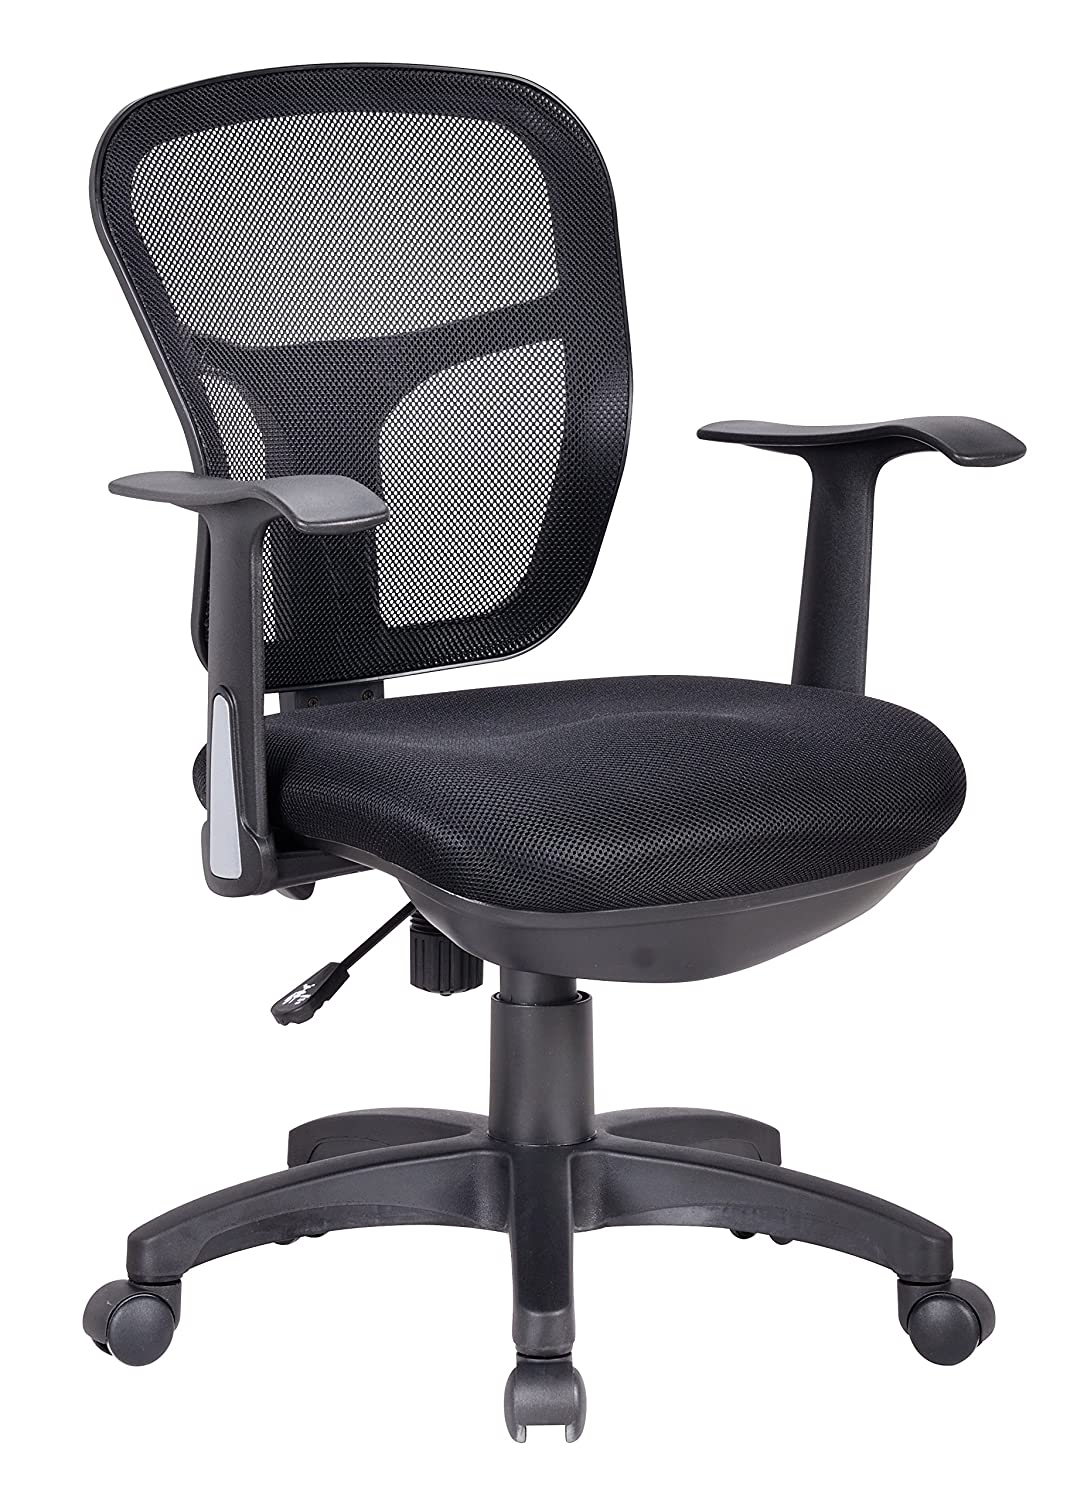 Best office chair 2016 - Office Factor Ergonomic Black Mesh Desk Chair Lumbar Support Extra Cushion On The Seat Fixed Arms Swivel Tilt Mechanism Ergonomic Black Mesh Desk Operative